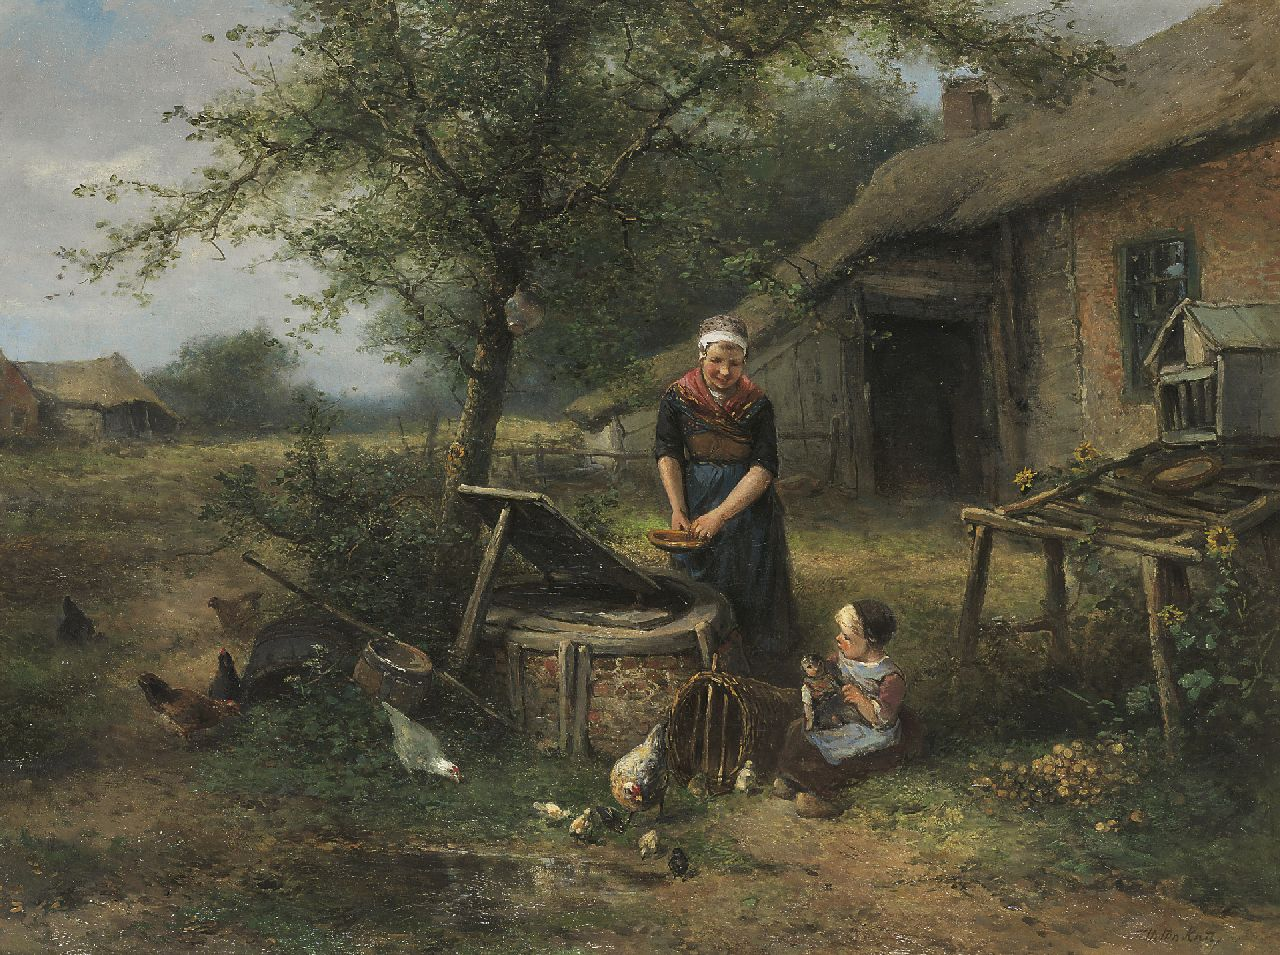 Kate J.M.H. ten | Johan 'Mari' Henri ten Kate | Paintings offered for sale | Mother and child near the well, oil on canvas 60.5 x 80.0 cm, signed l.r.